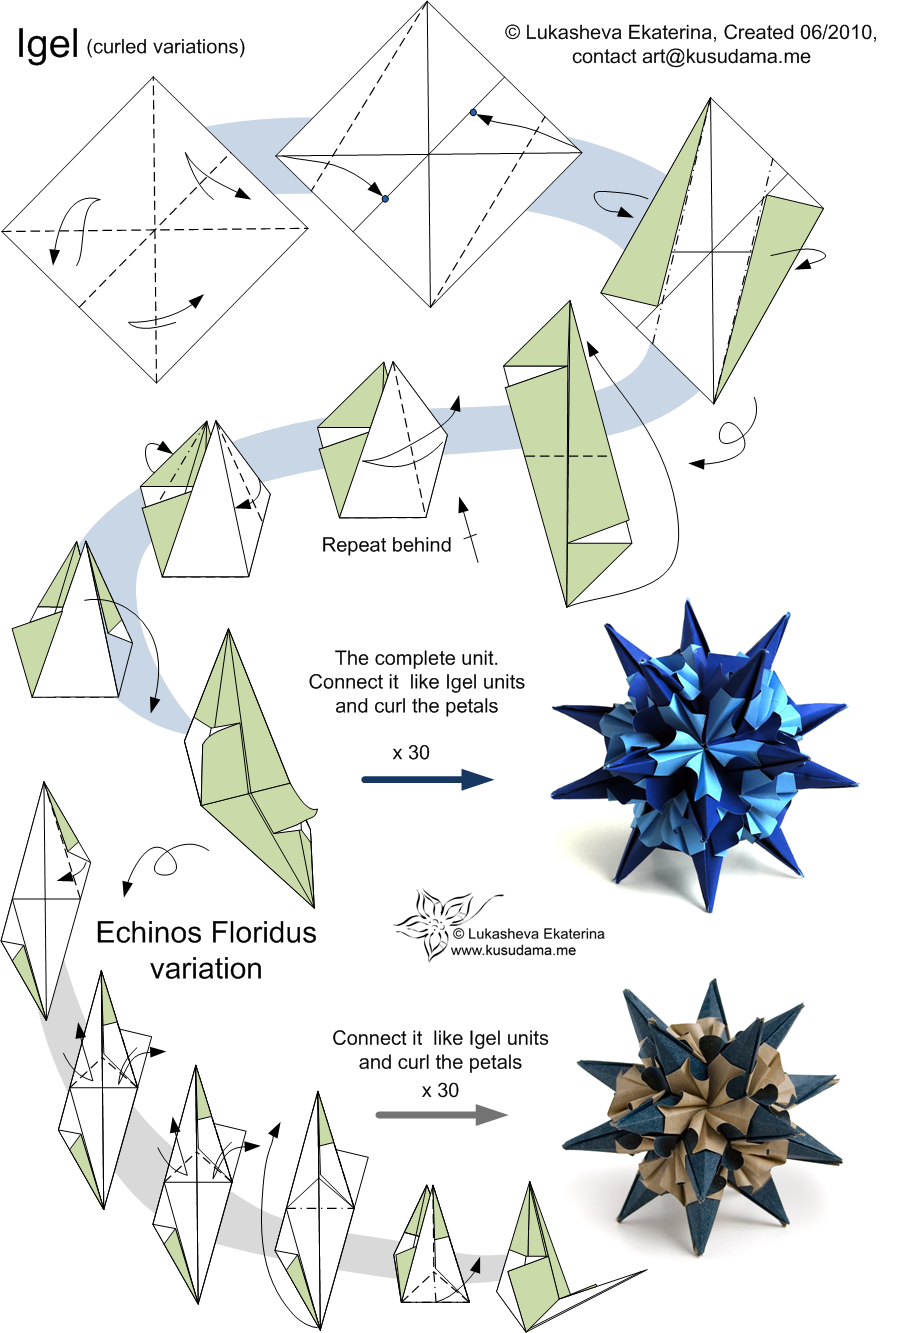 Diagram for Echinos_floridus kusudama